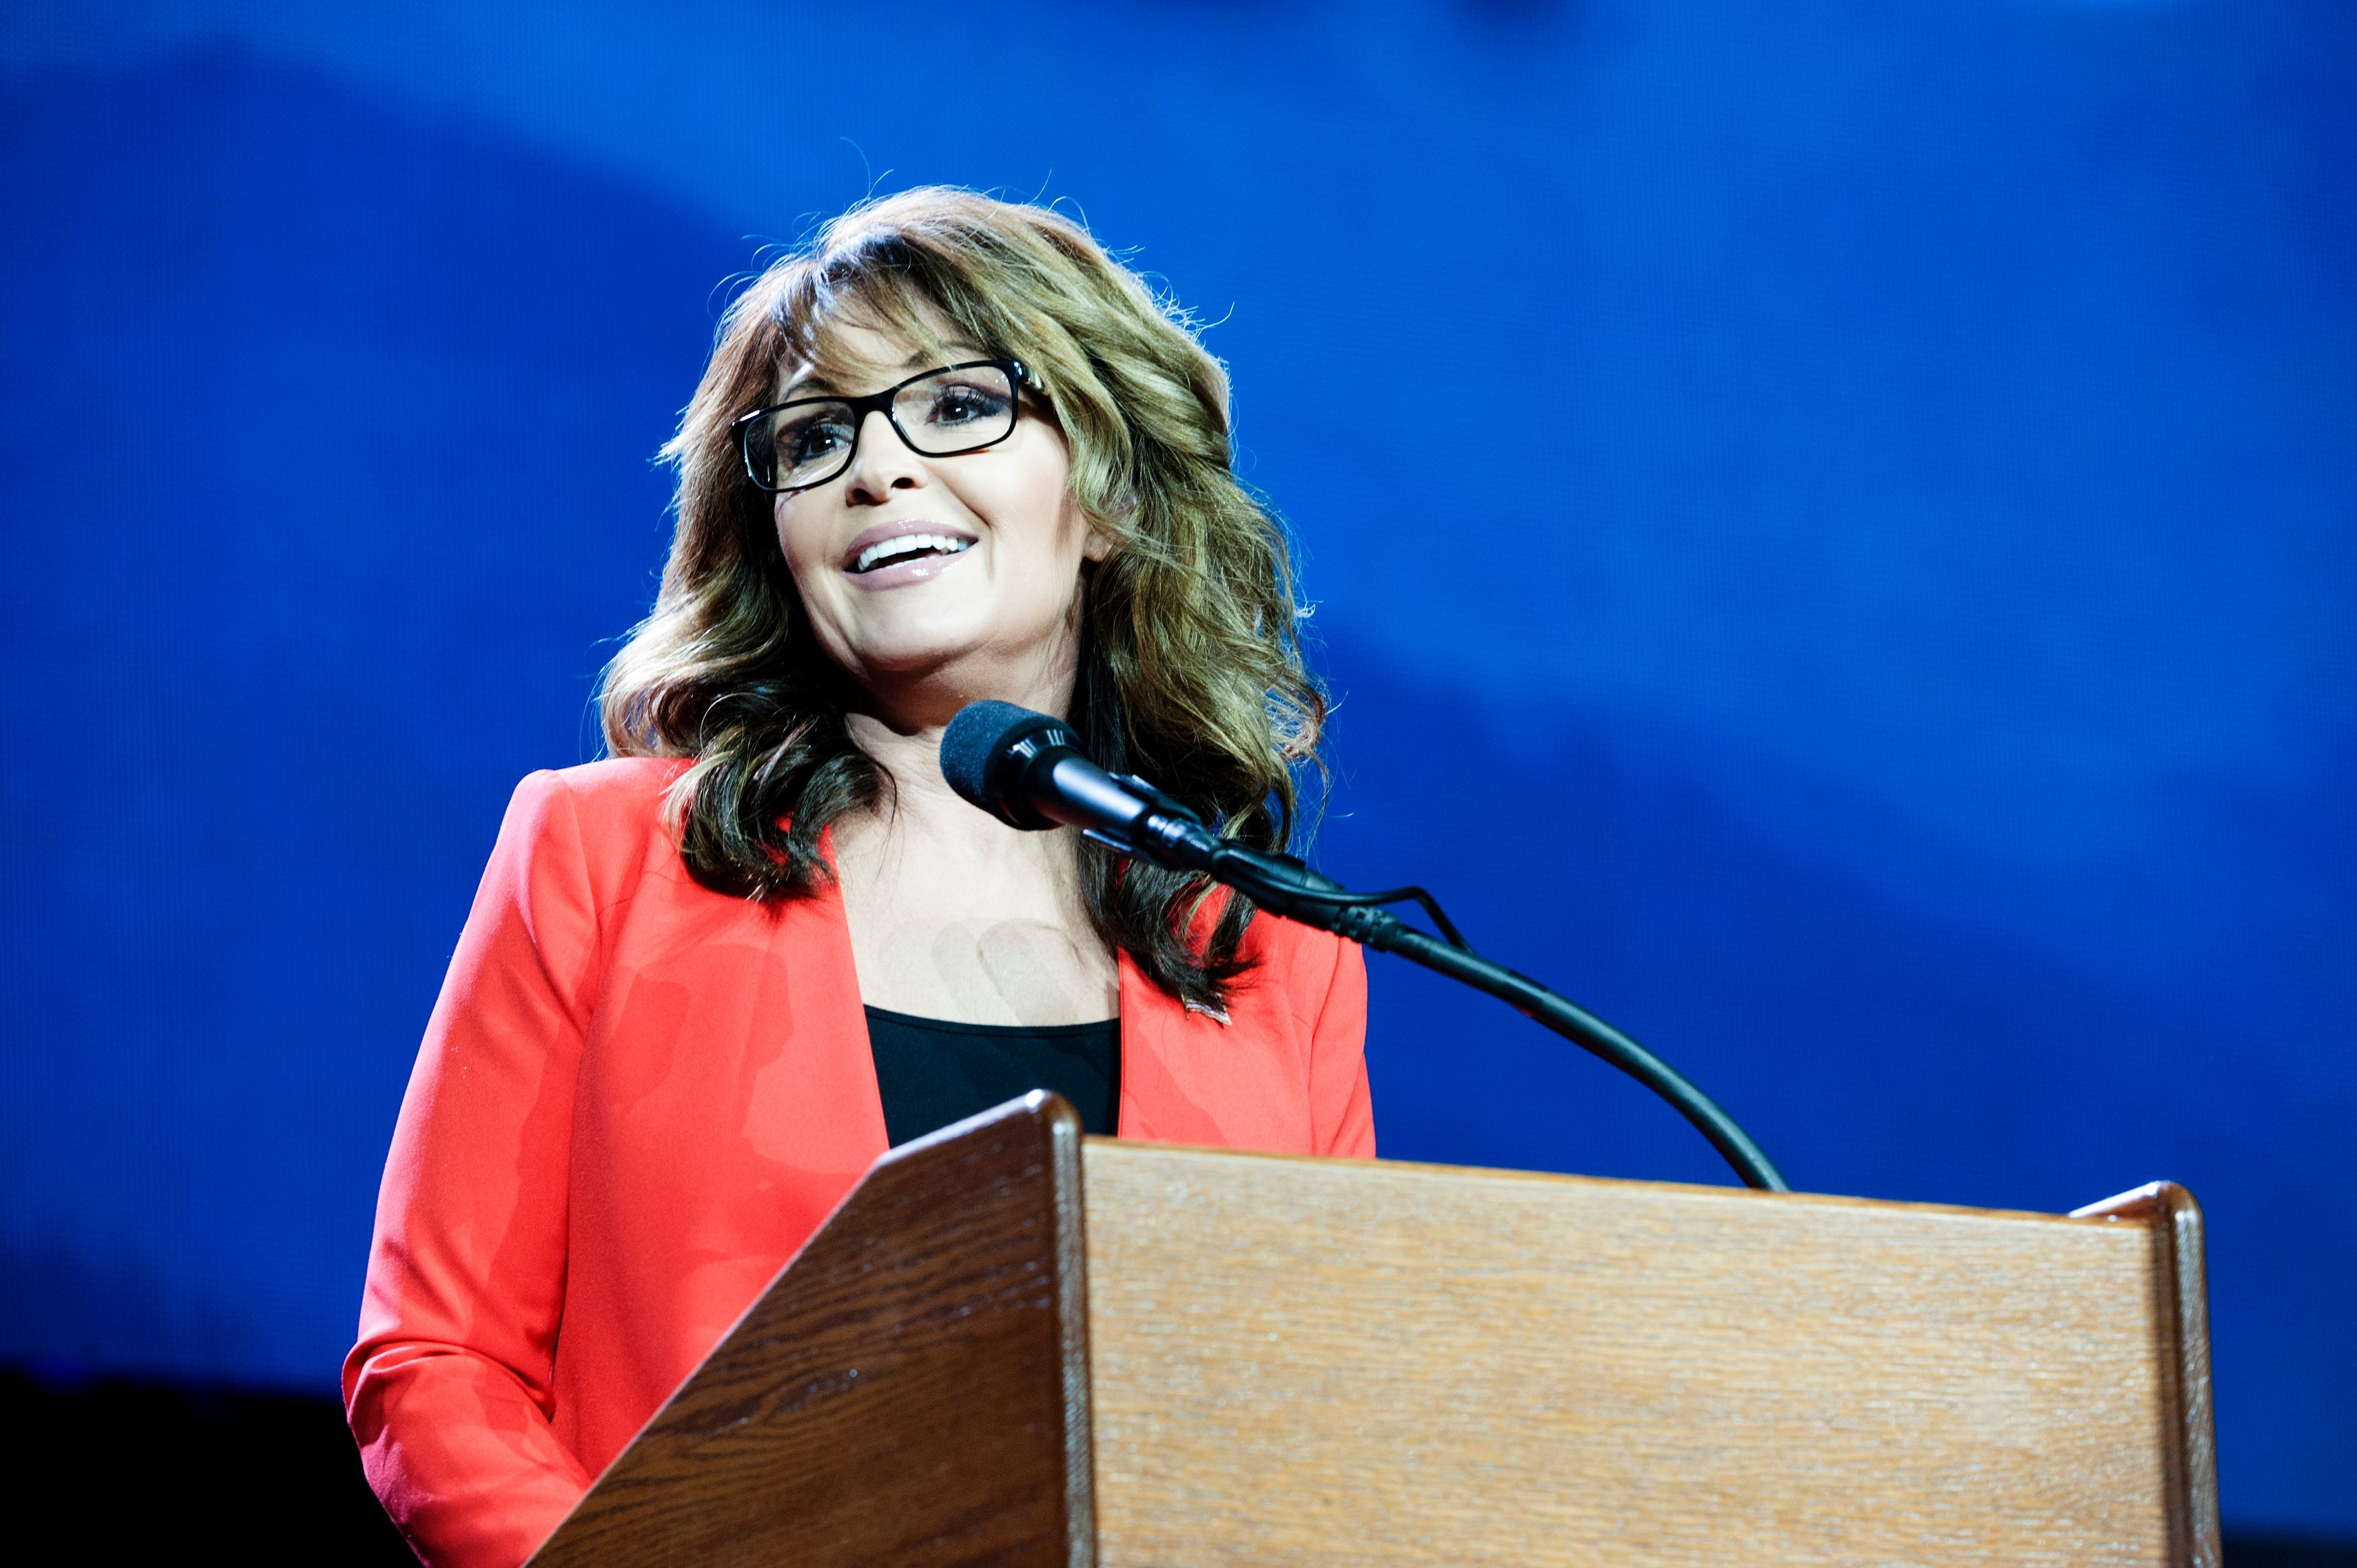 Sarah Palin attends a GOP conference